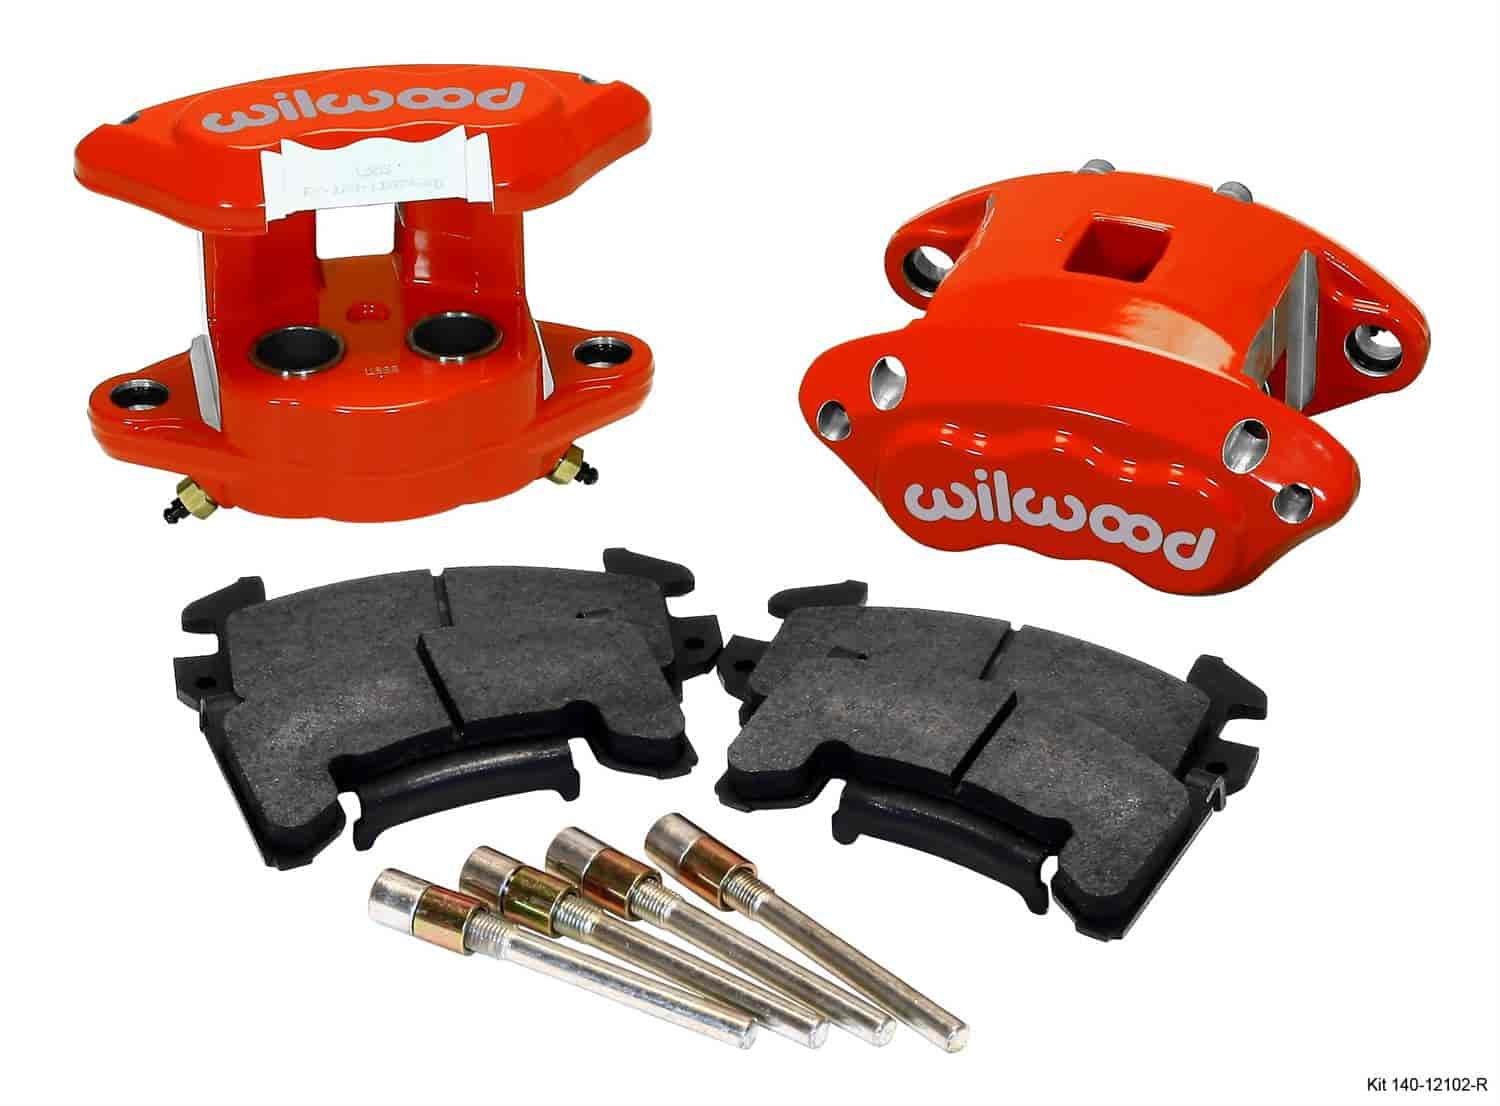 Wilwood 140-12102-R - Wilwood D154 Rear Caliper Kits